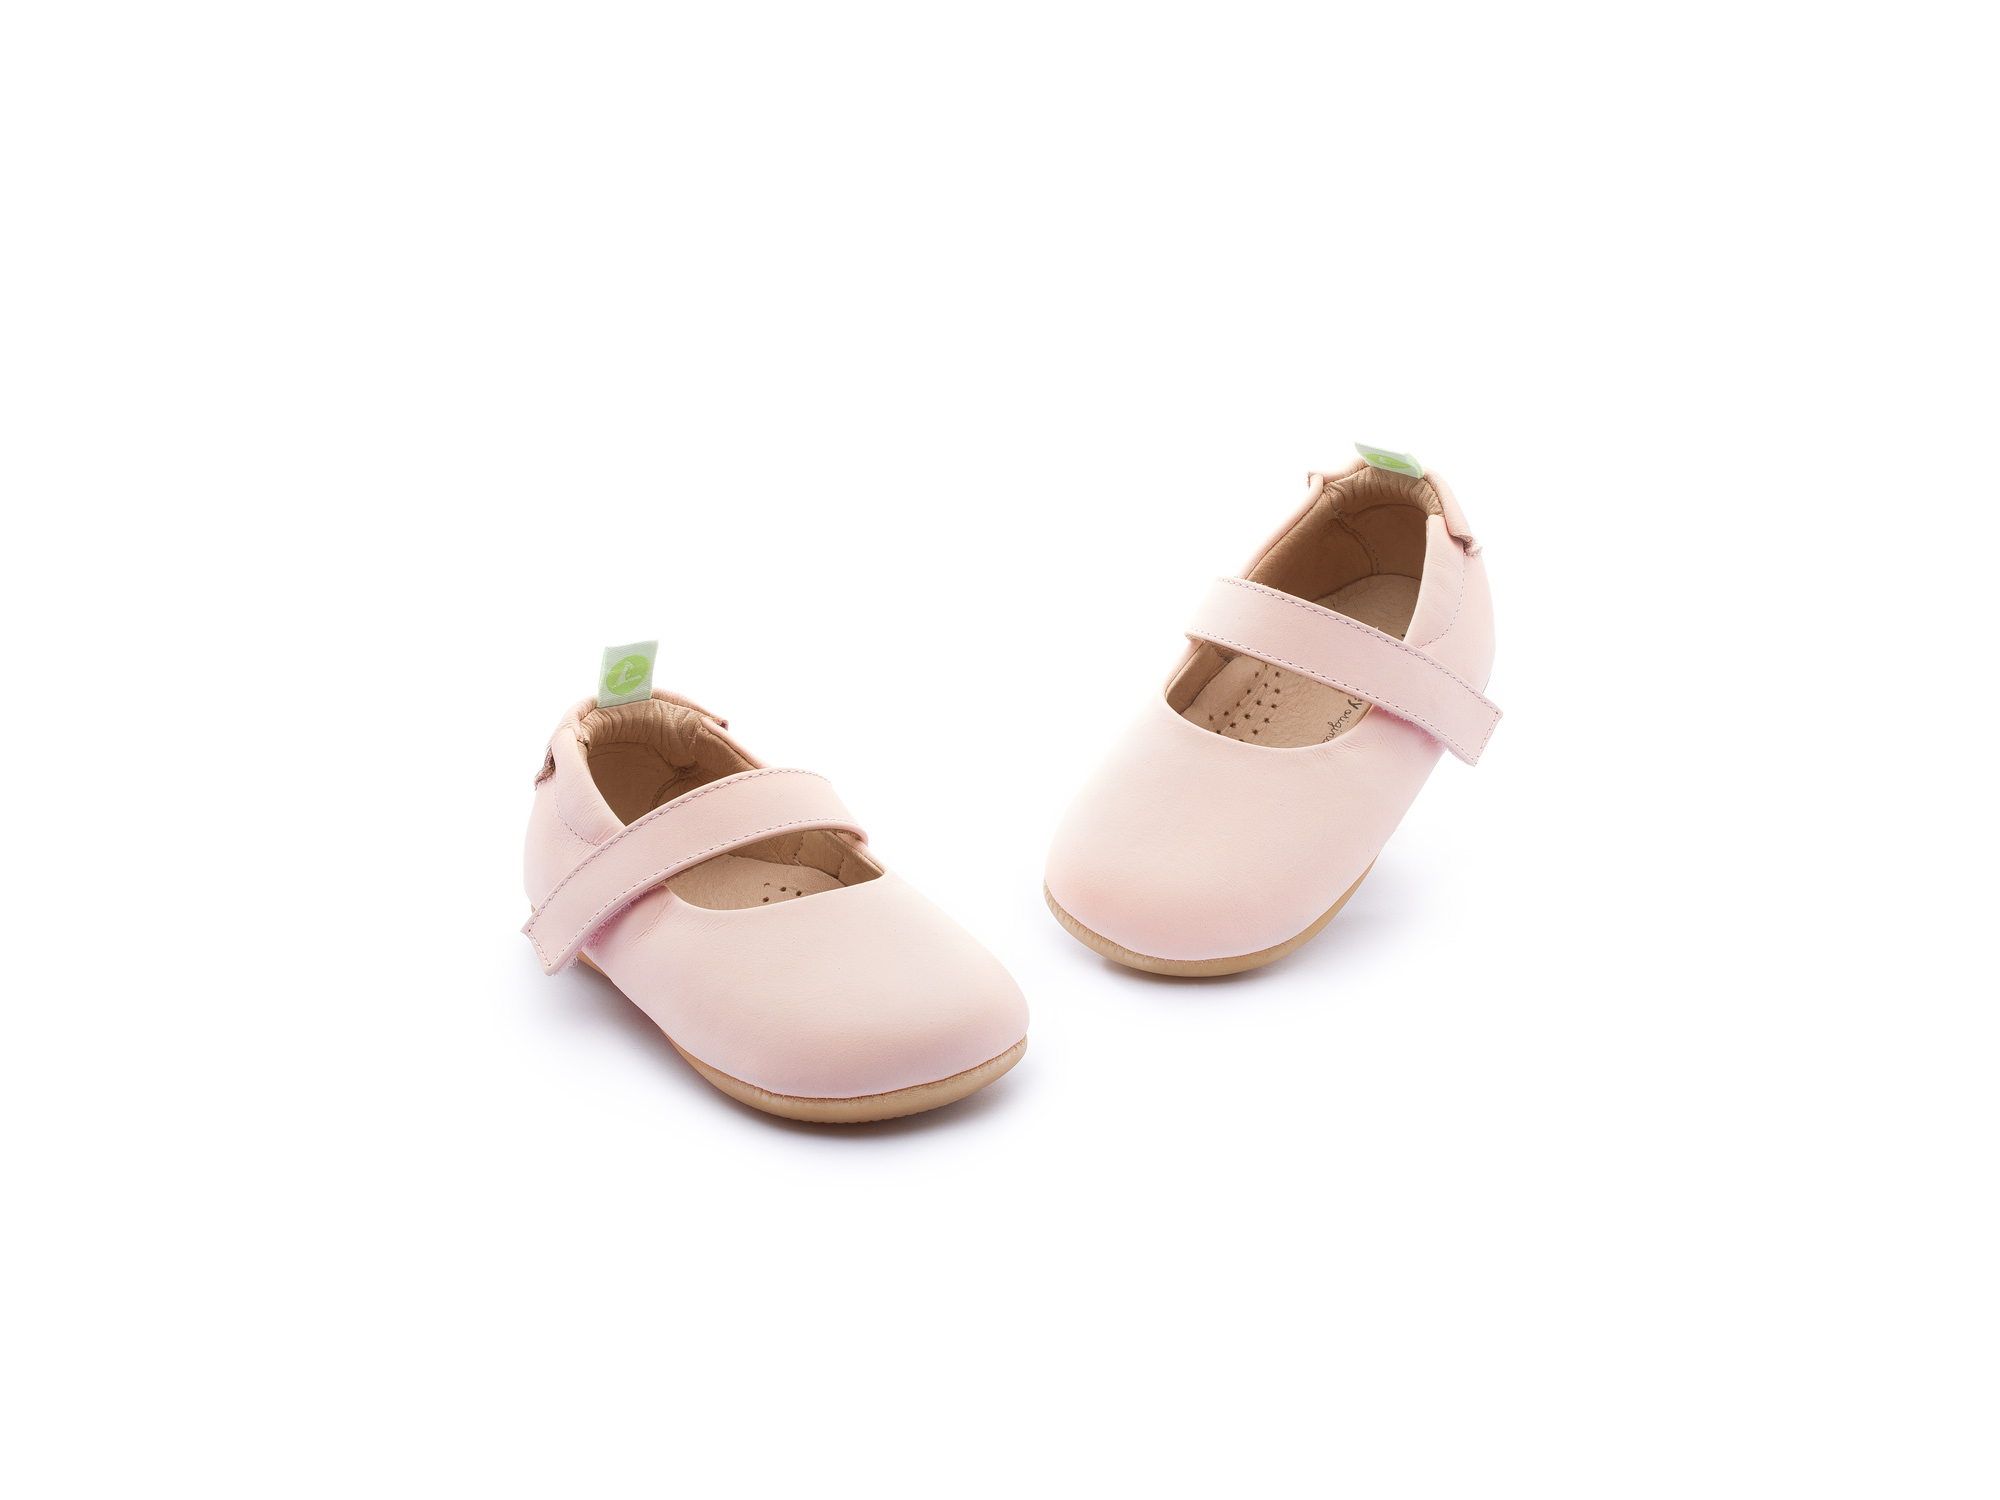 Boneca Dolly Pink Sands Pearl Baby 0 à 2 anos - 3